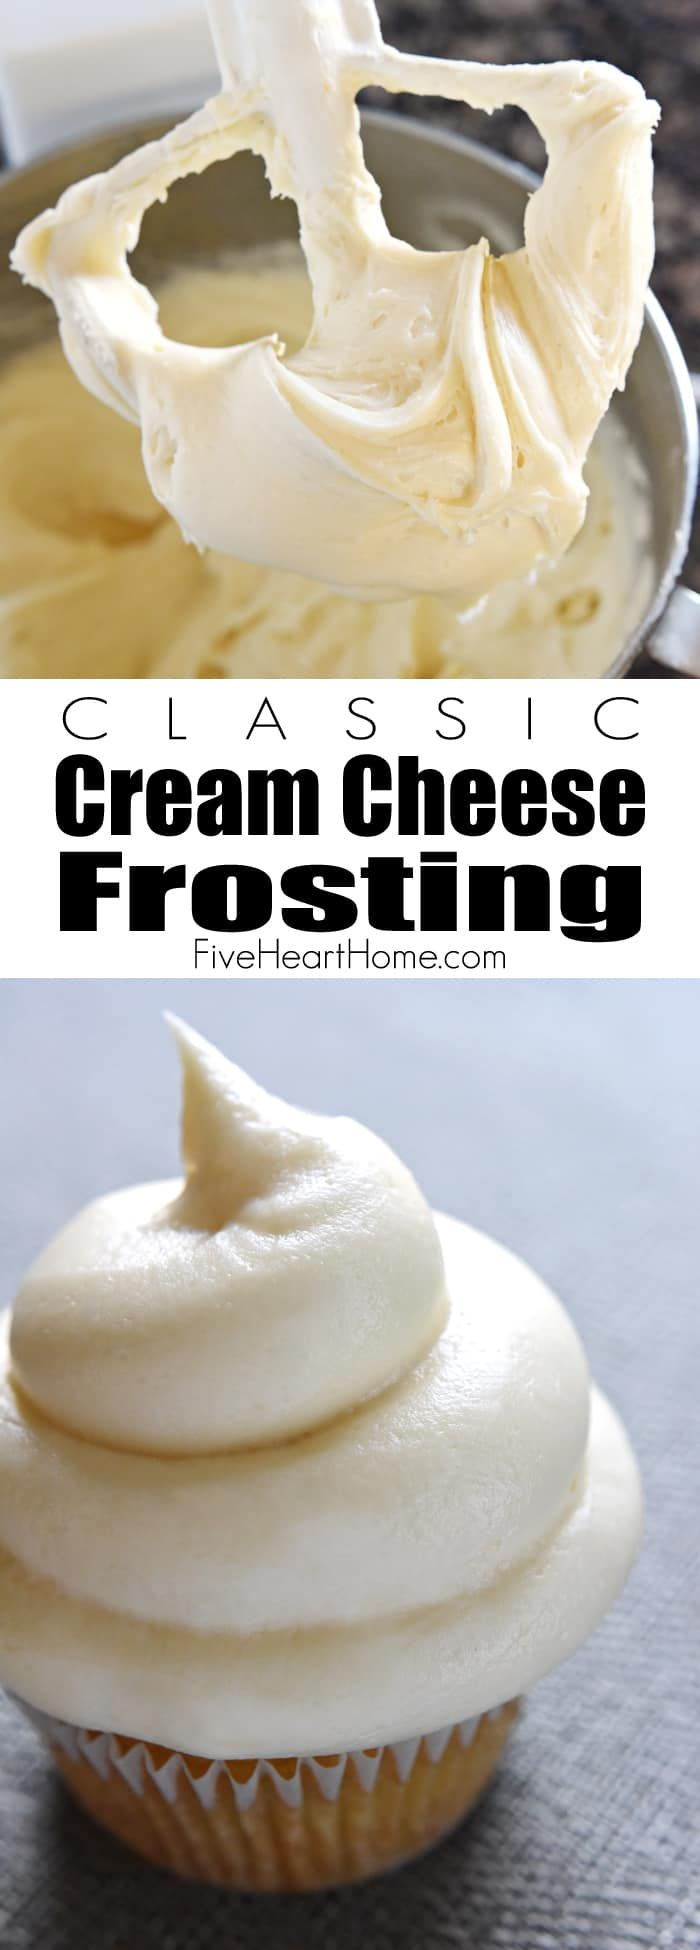 The ULTIMATE Cream Cheese Frosting • FIVEheartHOME